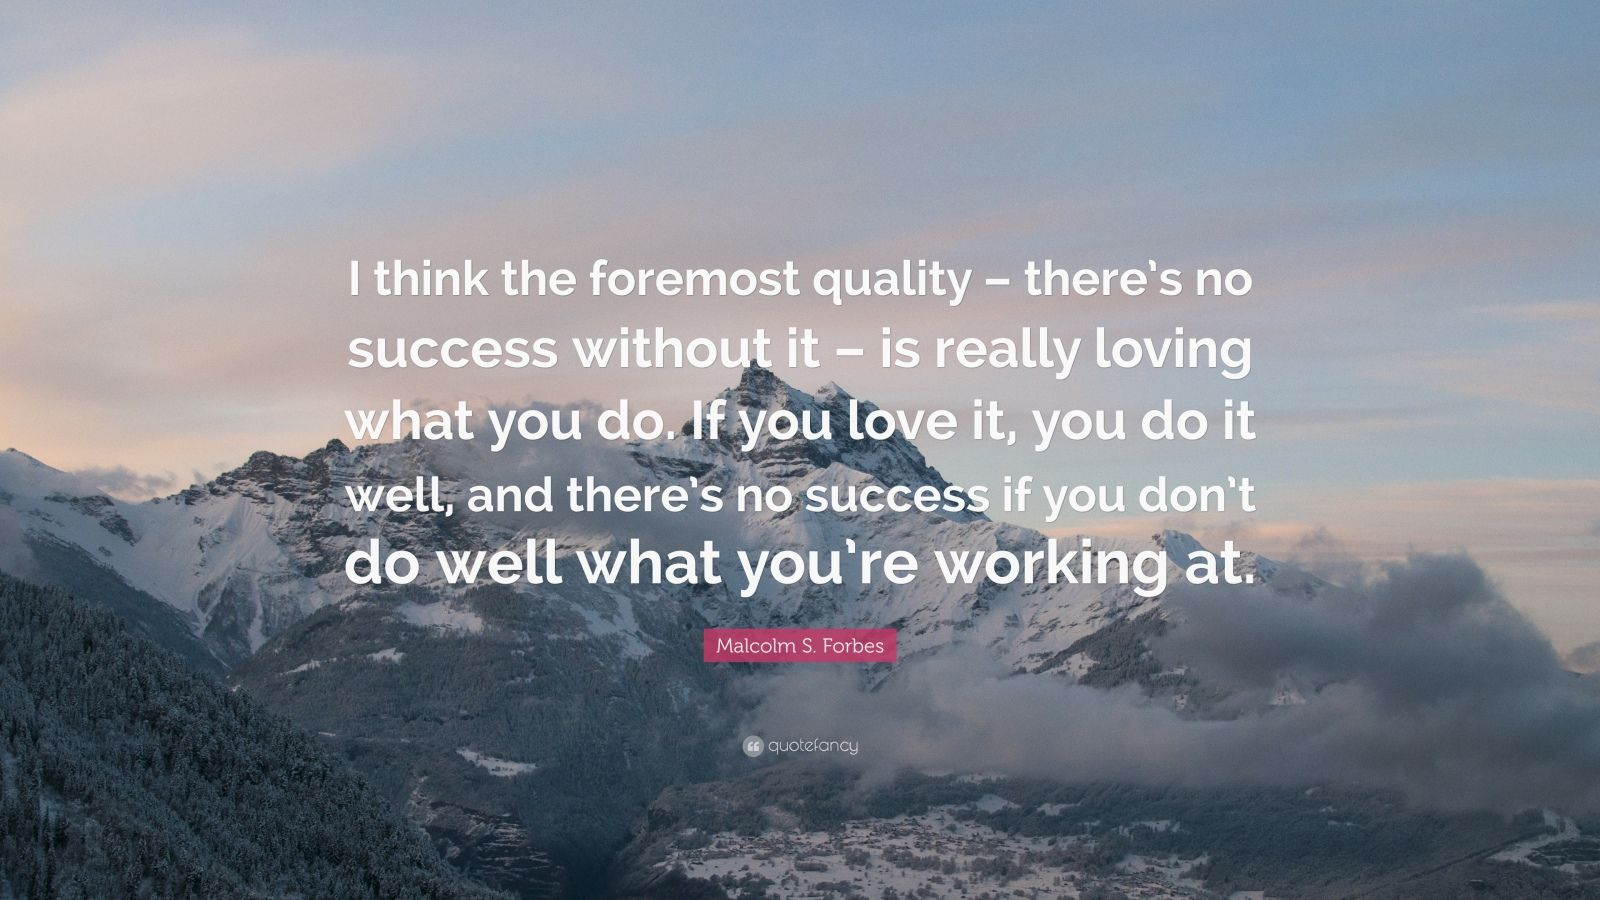 "Malcolm S. Forbes Quote: ""I think the foremost quality – there's no success without it – is really loving what you do. If you love it, you do it well, and there's no success if you don't do well what you're working at."""